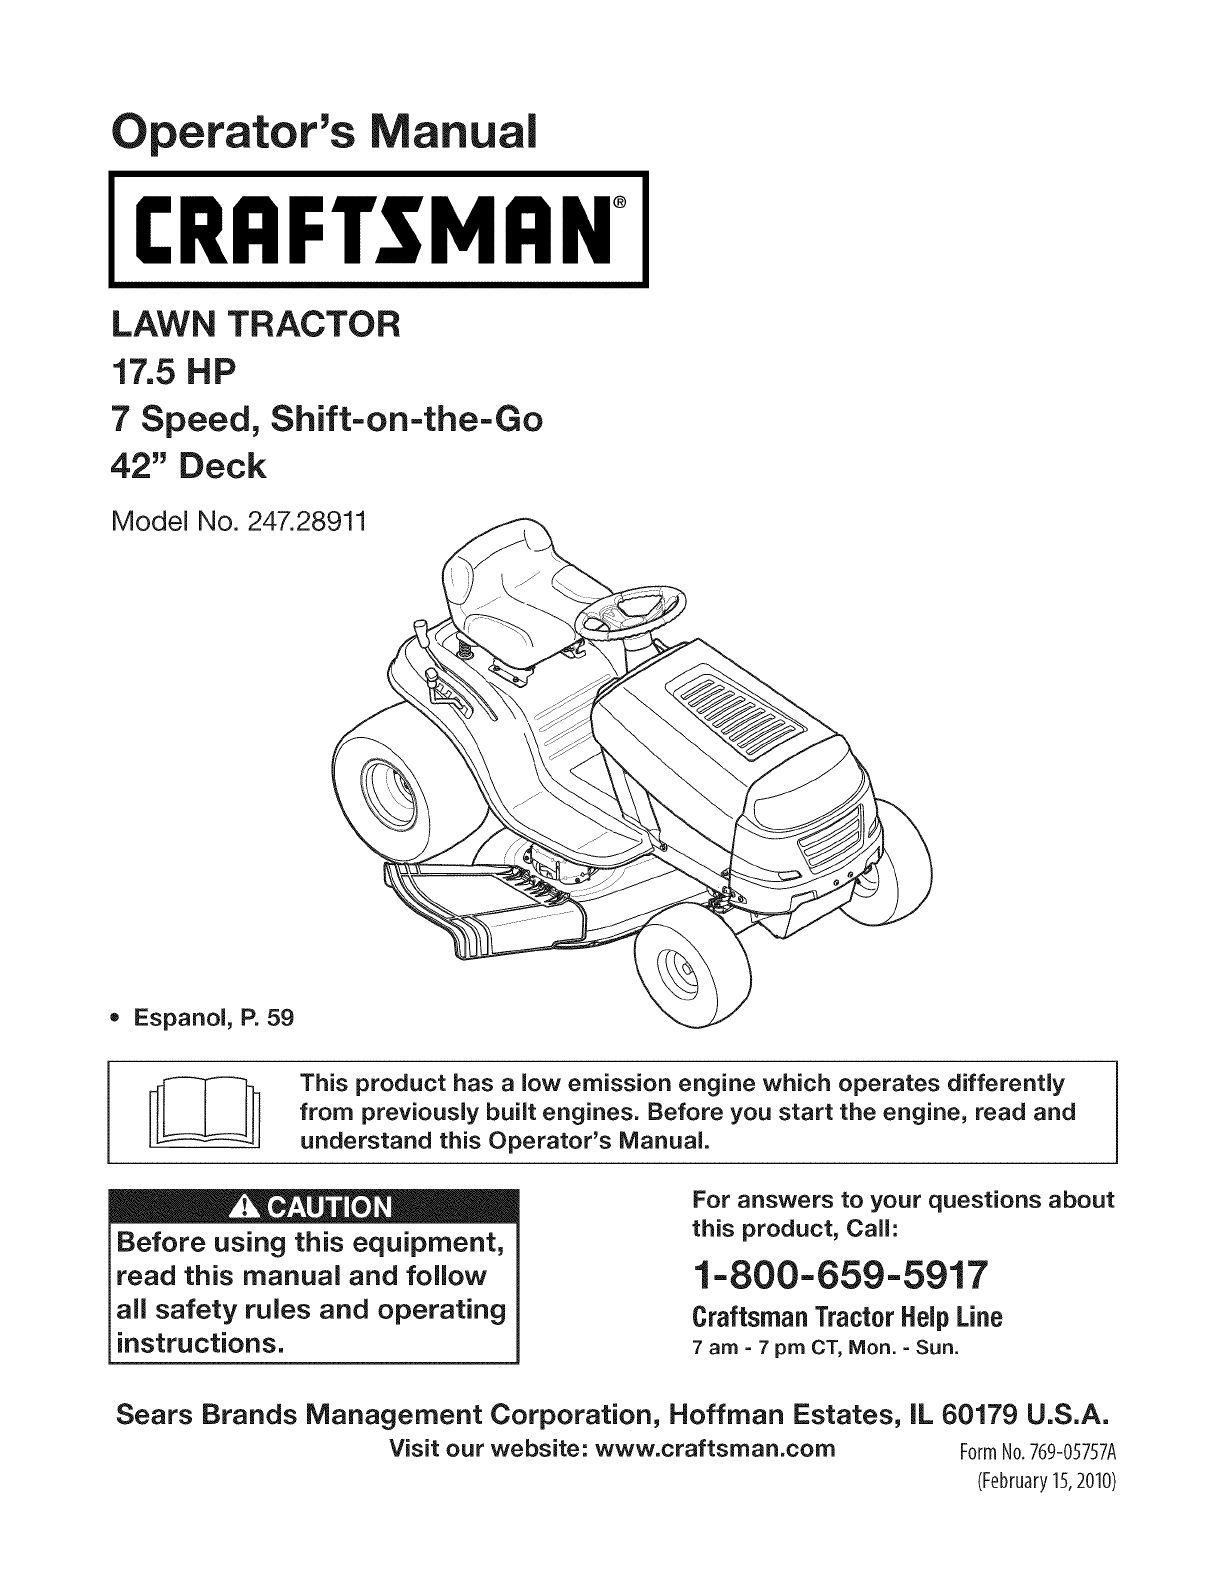 8e7b3384 e1d3 48fe bee0 c4dbc25d375e bg1 craftsman lawn mower 28911 user guide manualsonline com craftsman lt1000 wiring diagram at soozxer.org